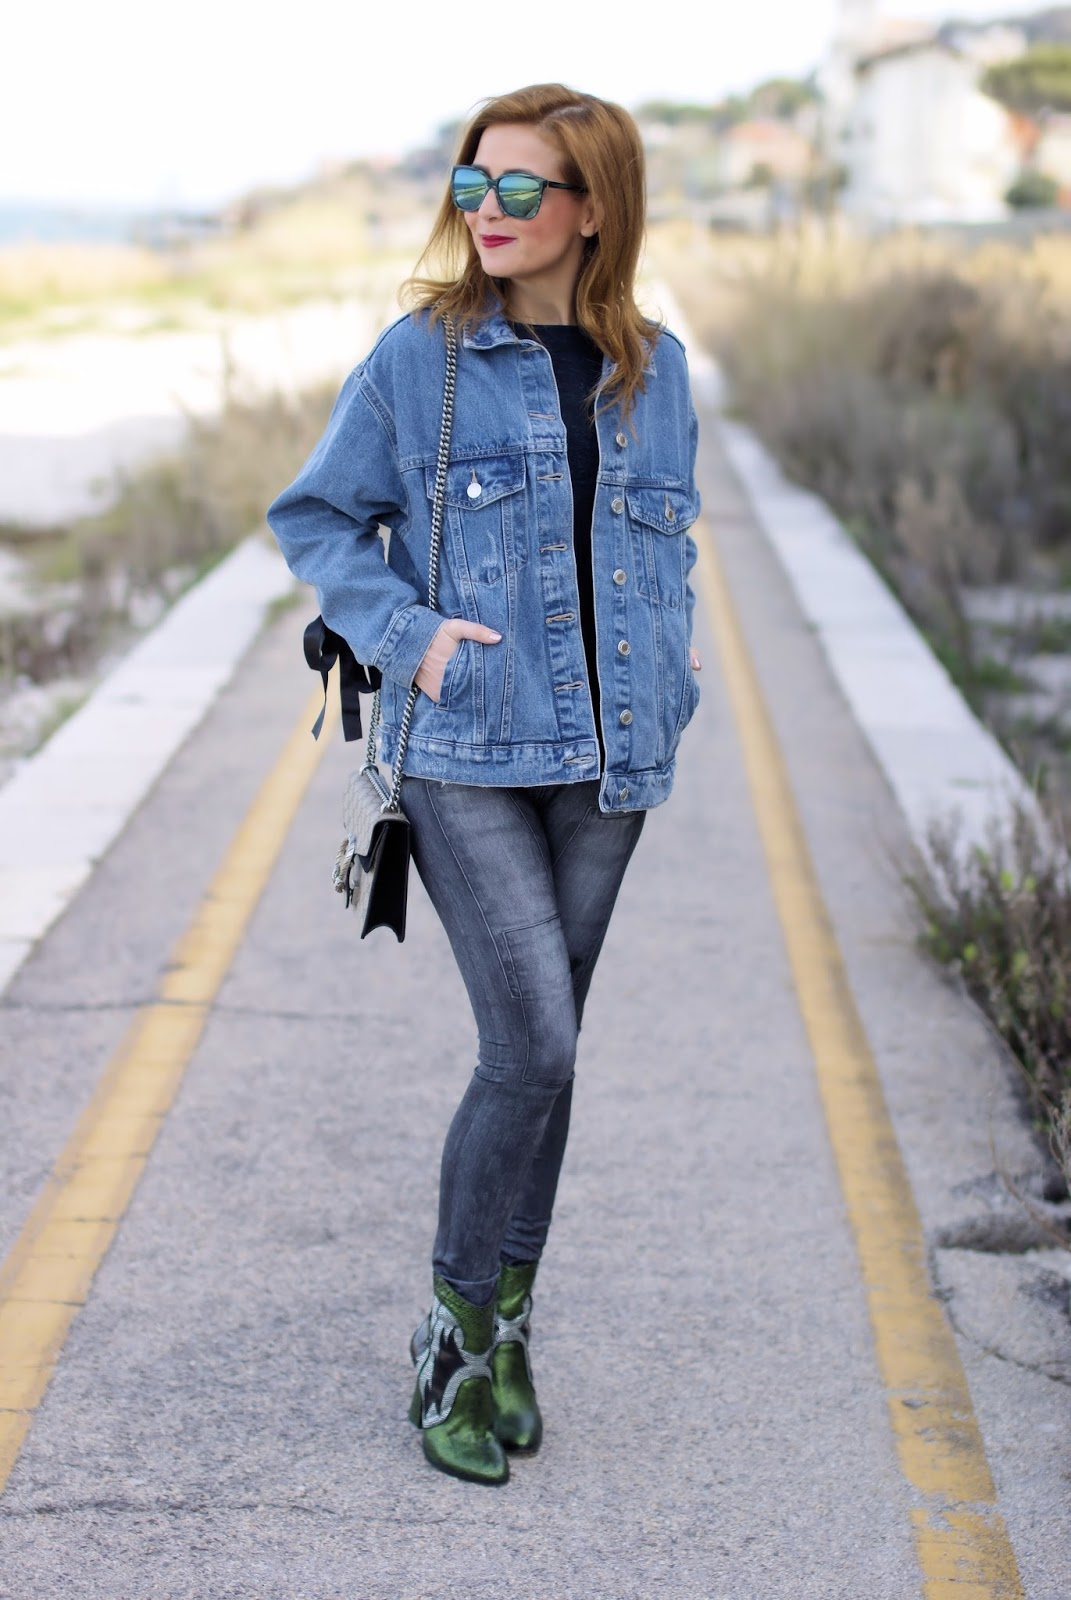 denim jeggings and cowgirl look on Fashion and Cookies fashion blog, fashion blogger style